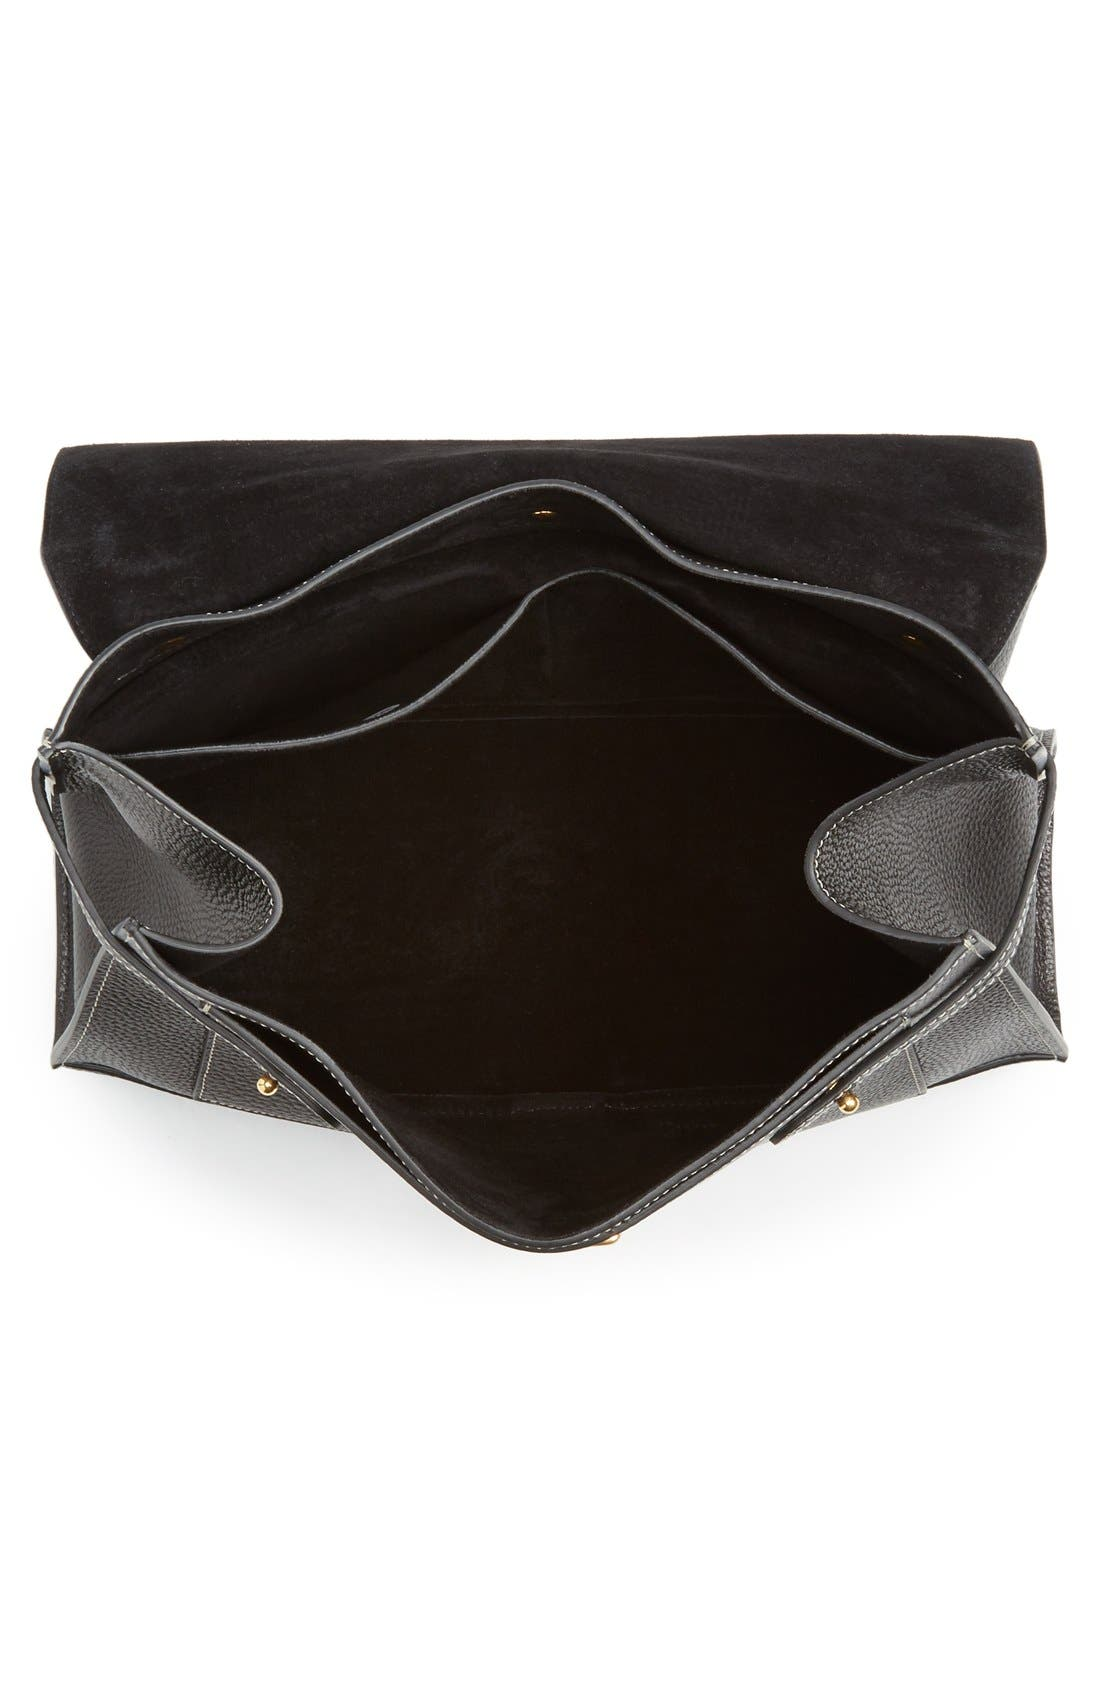 Alternate Image 4  - Mulberry 'Small Buckle' Leather Shoulder Bag